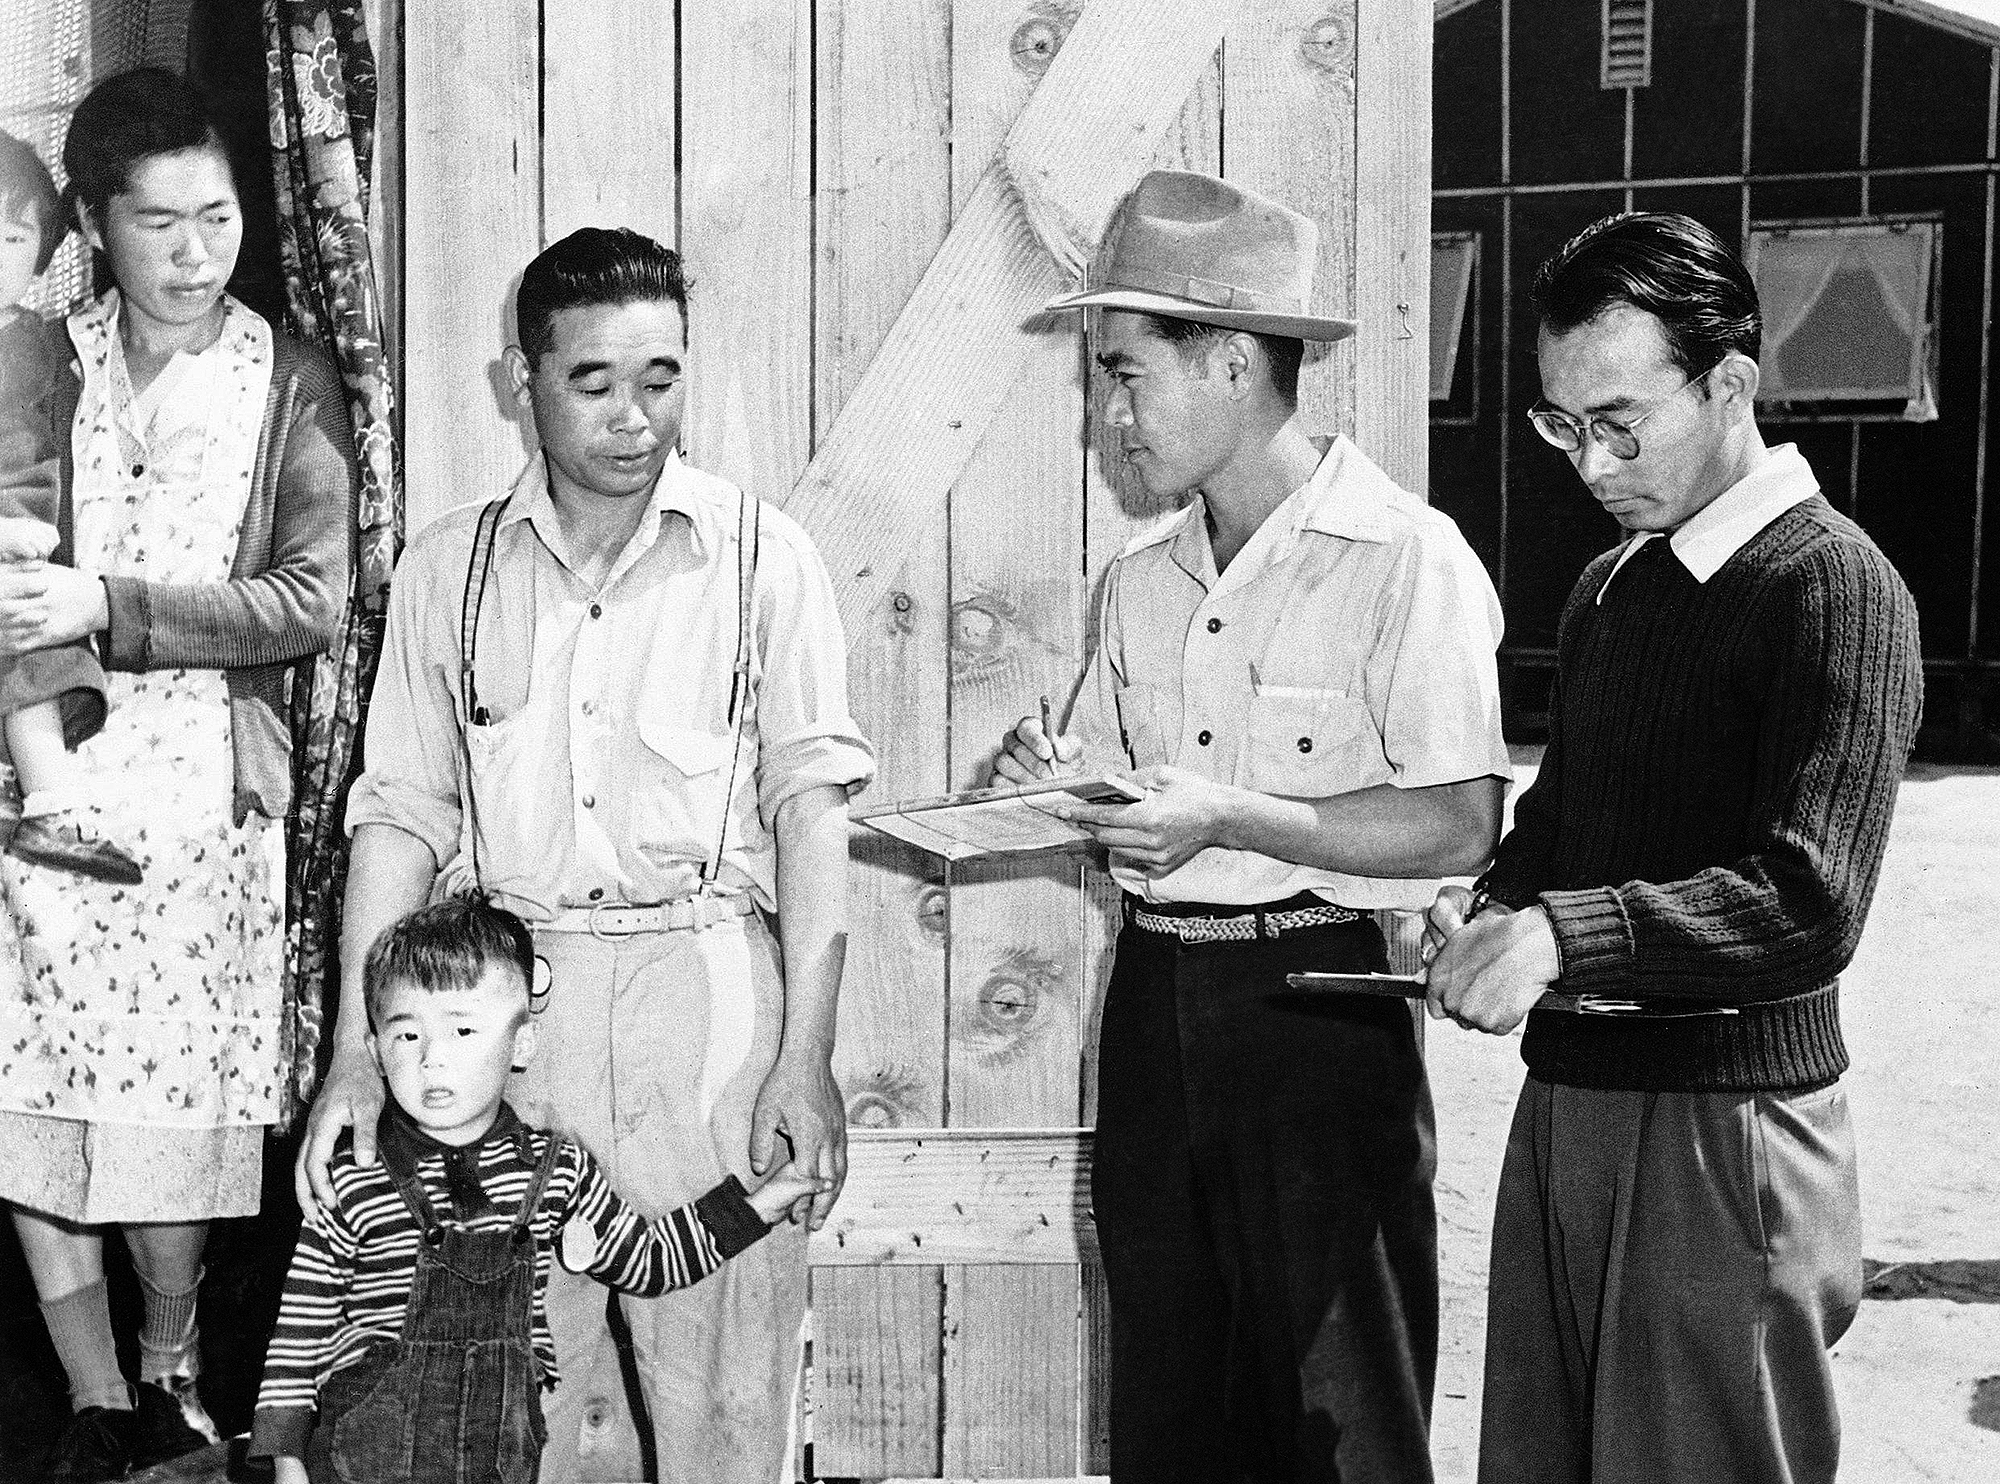 This is a New Japanese family checking in at the big assembly center in Santa Anita, California July 2, 1942, that was established at the race track after the start of the war for West Coast people of Japanese descent. Some 18,500 men, women and children, two thirds of them American citizens, are housed in barracks at the center. They have their own schools under the grandstand in the long room lined with windows, where formerly bets were placed by race track visitors. The internees are fed well and though they live under military rules, their mail censored, and barbed wire surrounding them, various forms of recreation help to make their life more life more. Teams have been formed at the center, diamond fans are rabid. (AP Photo)